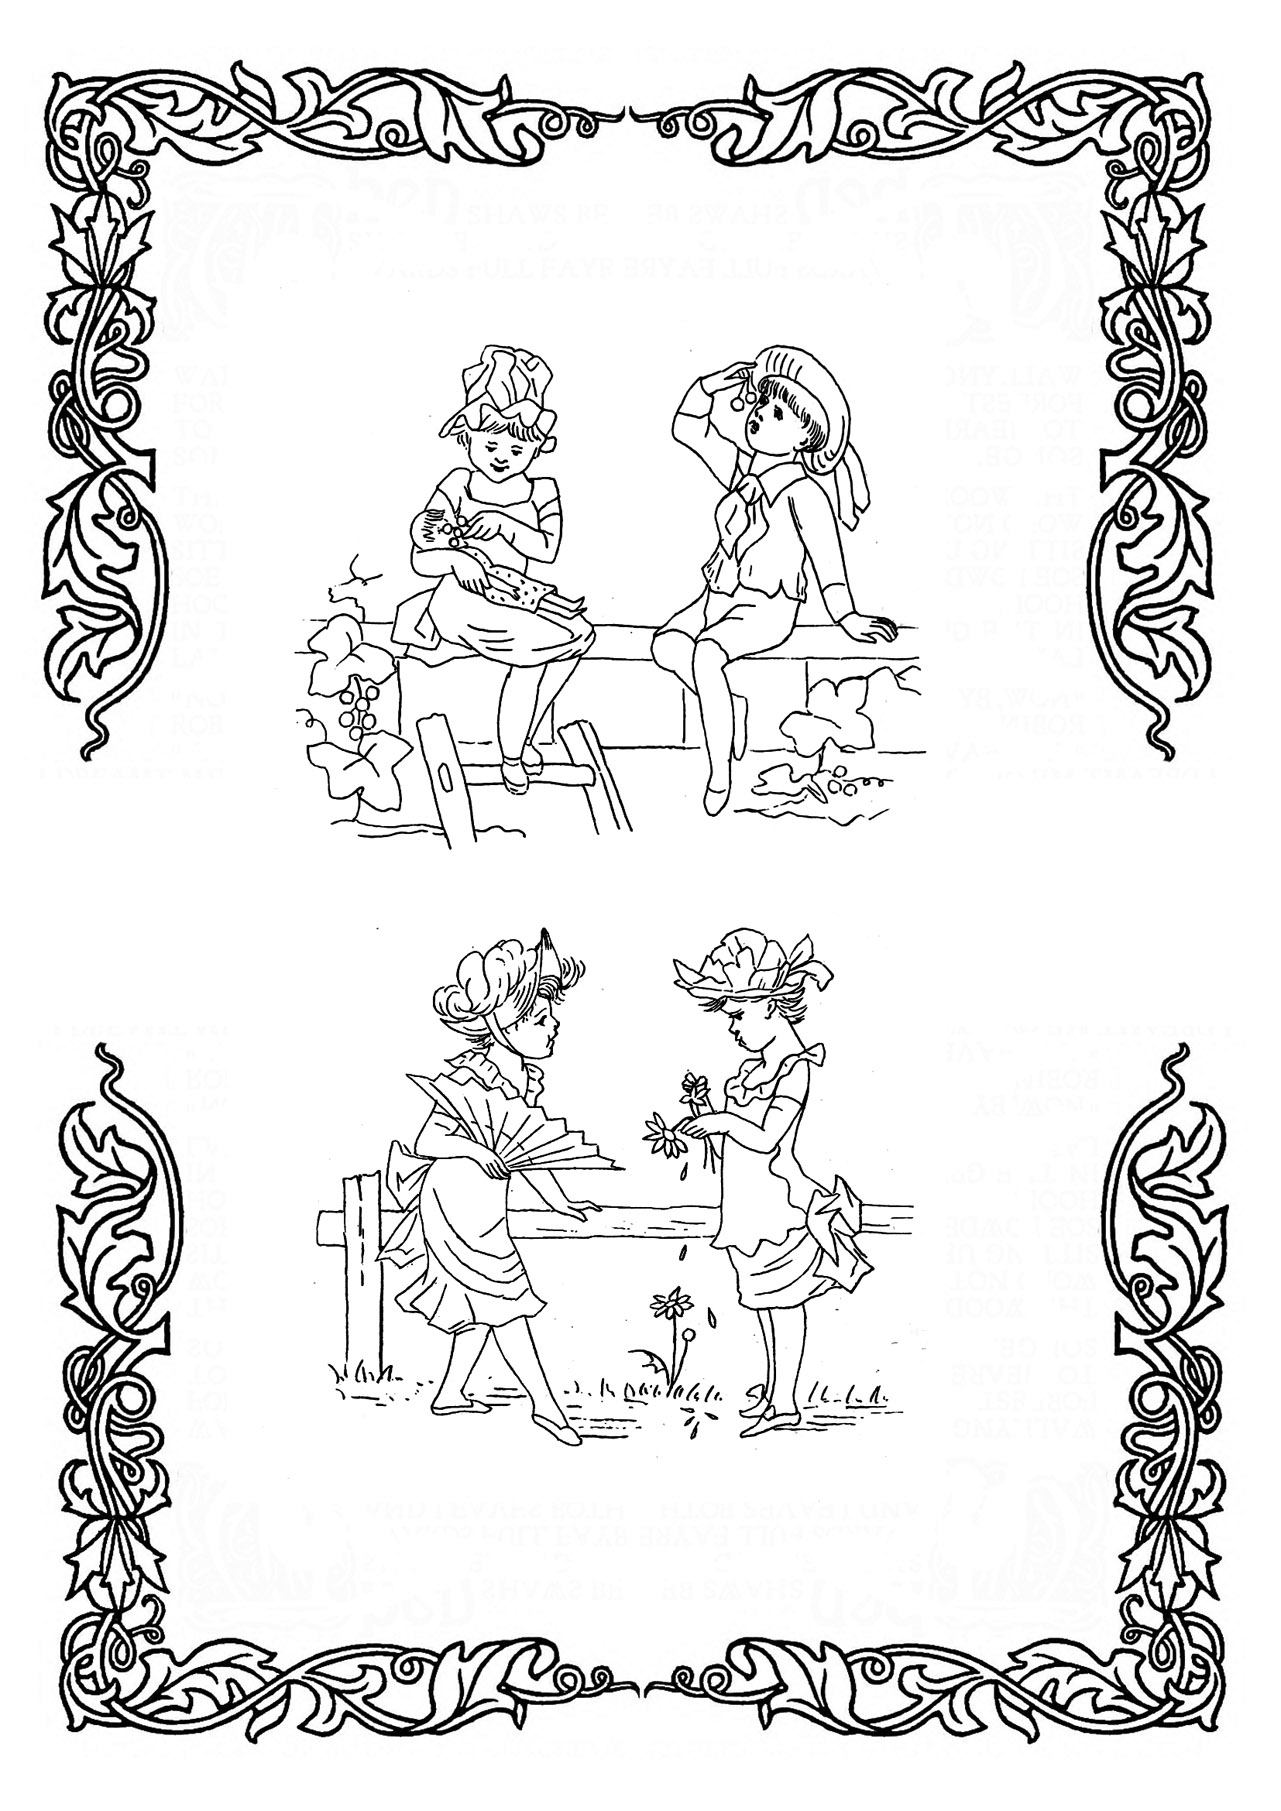 coloring images with Victorian children